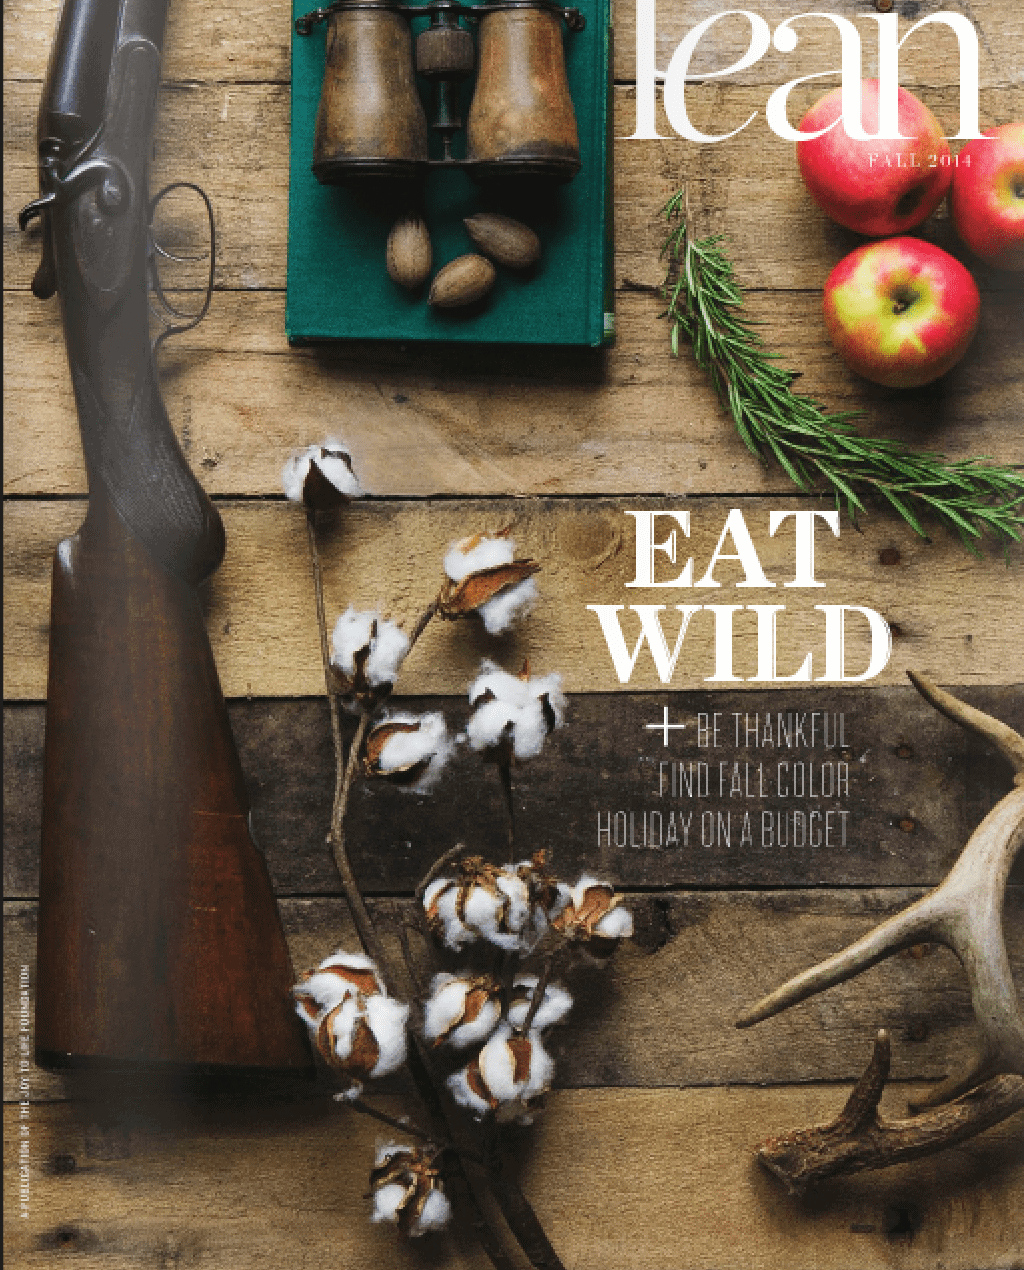 Stacy Lyn Harris' interviews with LEAN Magazine in their Fall issue about Eating Wild Foods and Sustainable Living!